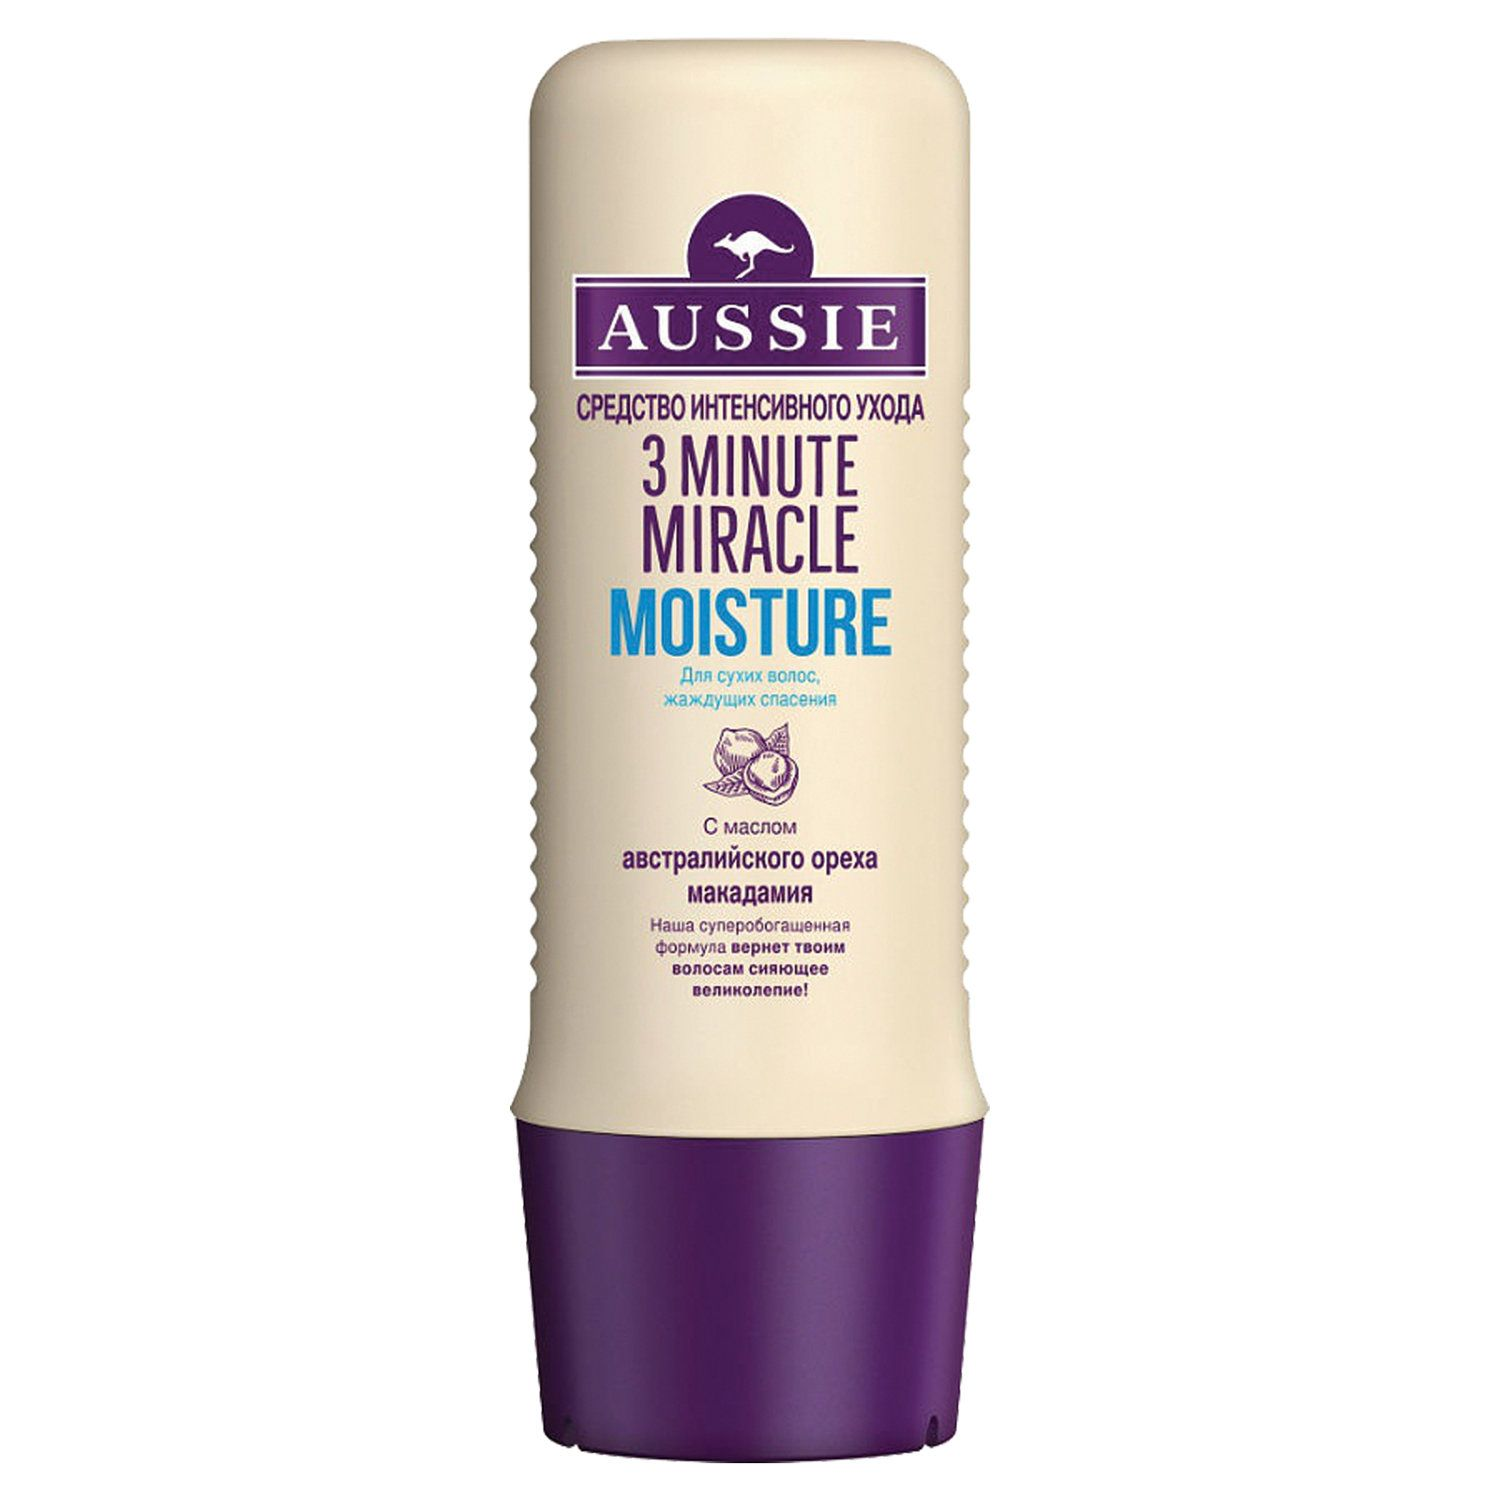 """Hair Mask 250 ml AUSSIE """"3 Minute Miracle Moisture"""", for intensive care"""